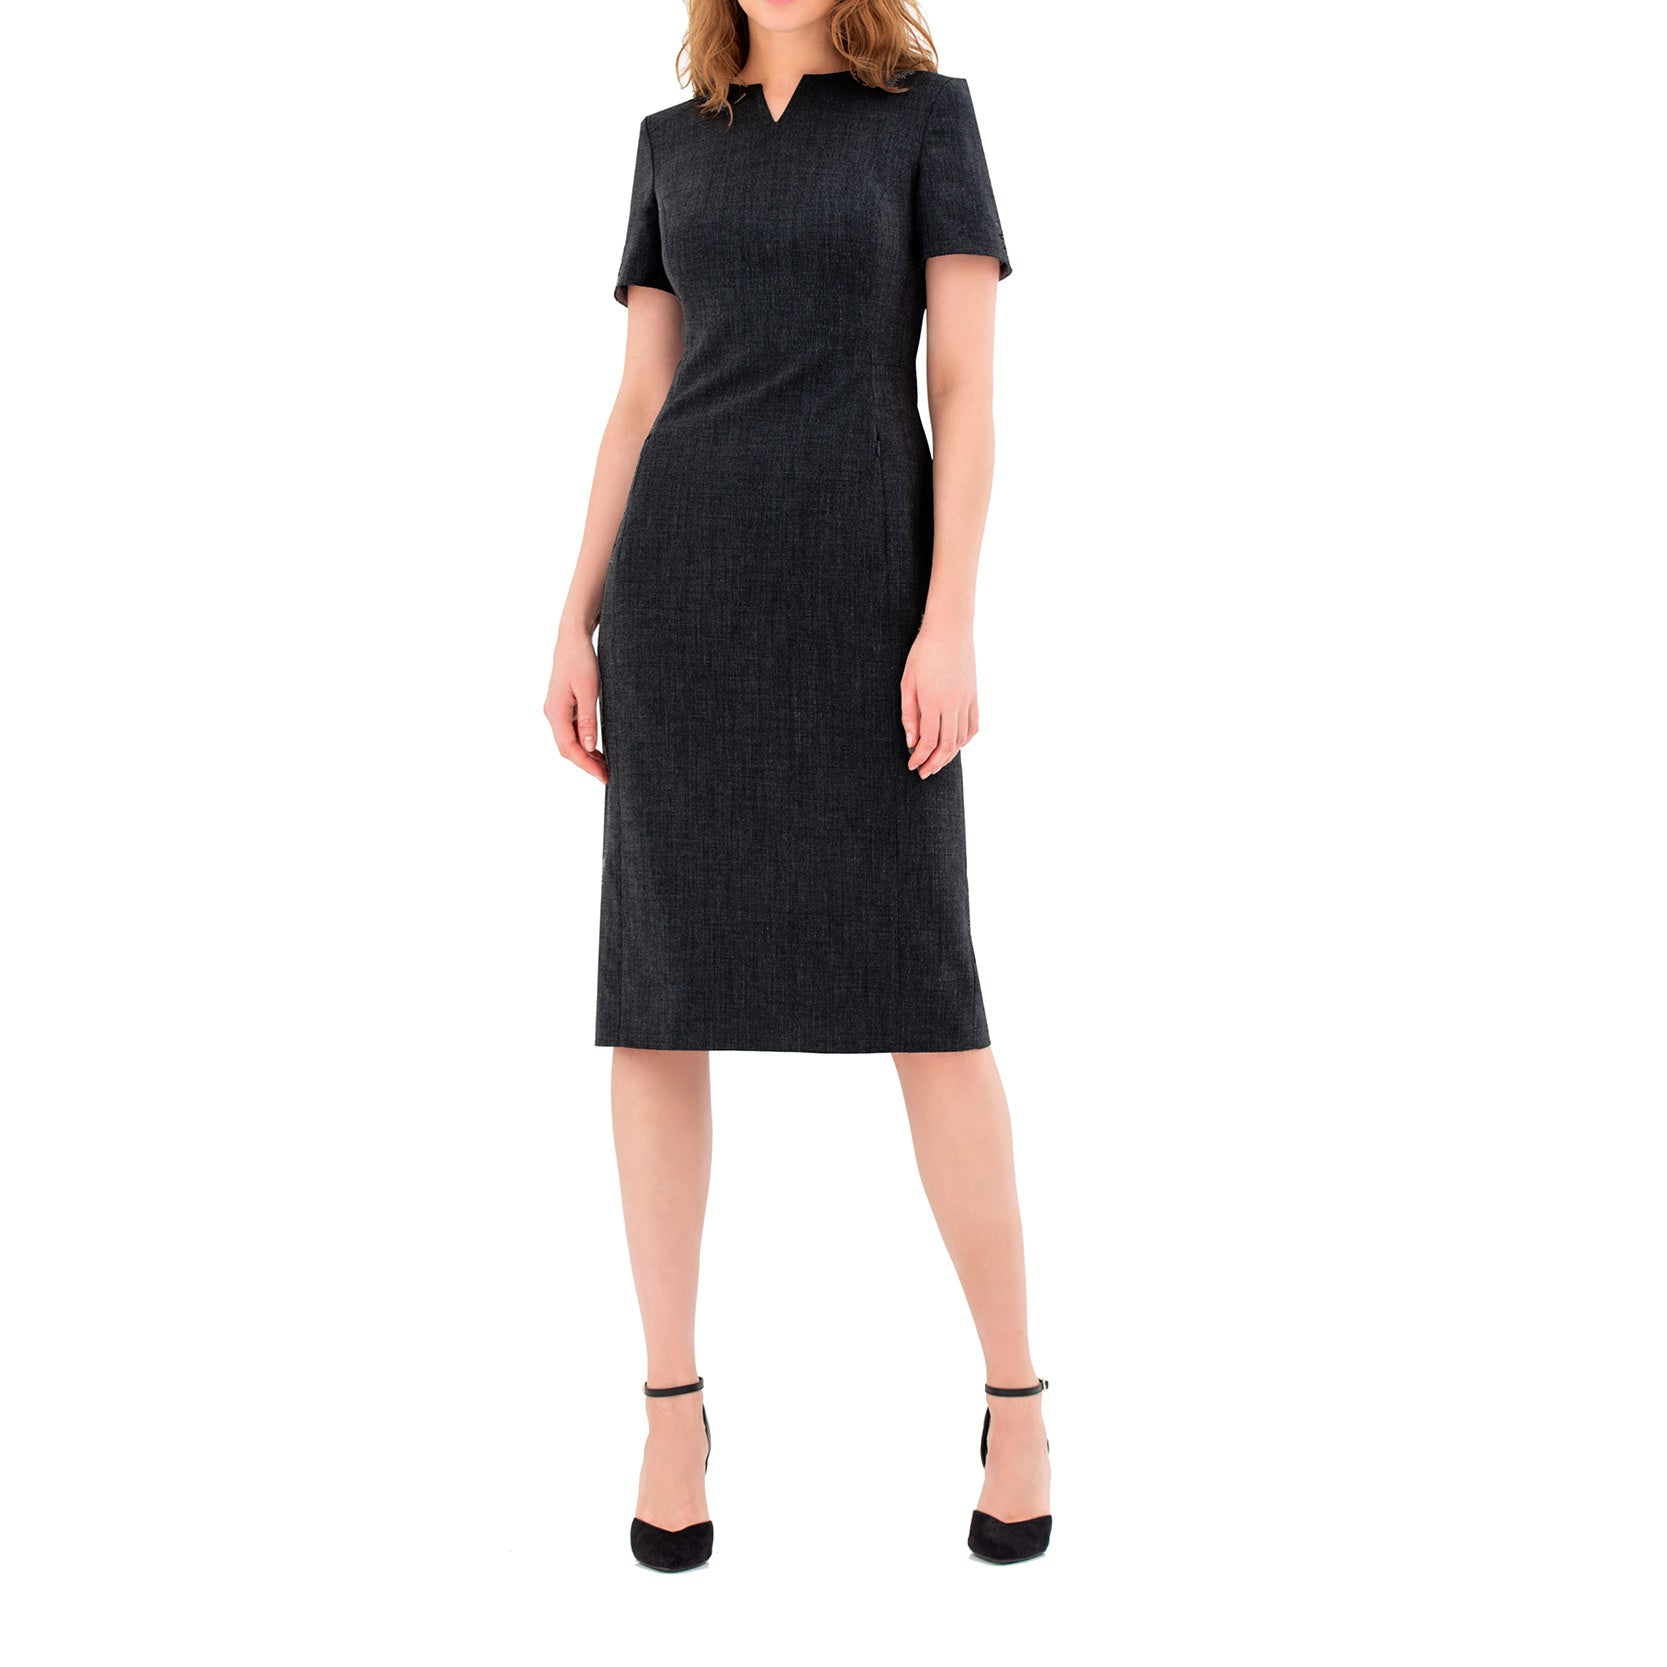 Bethnal Ladies Dress Charcoal